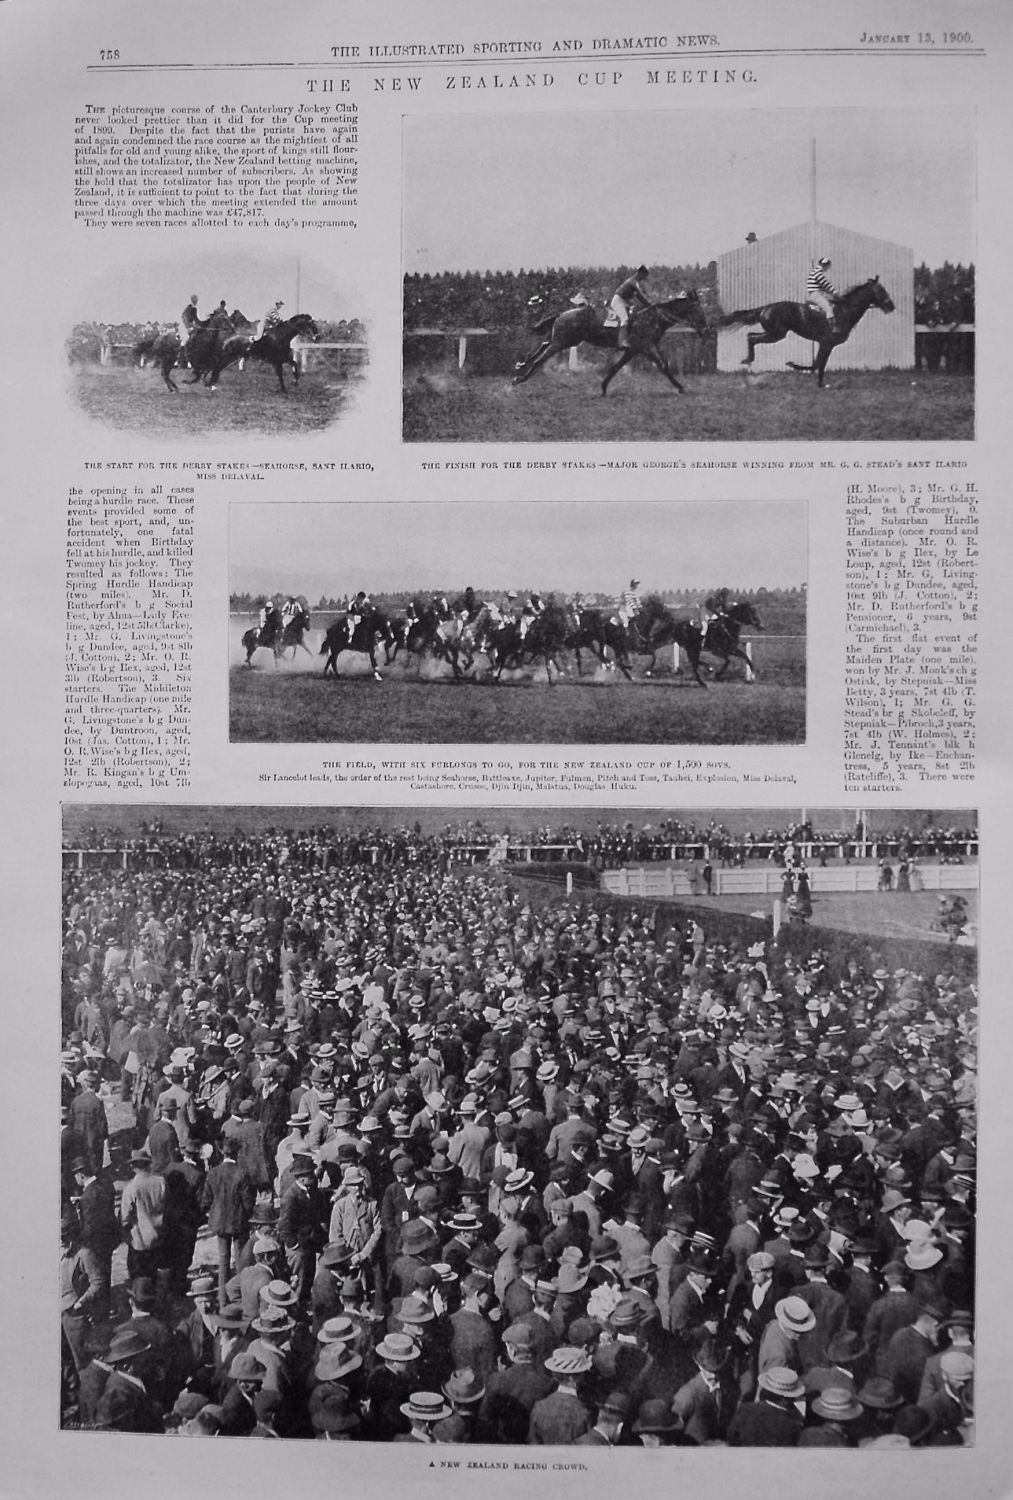 The New Zealand Cup Meeting. (Horse Racing) 1900